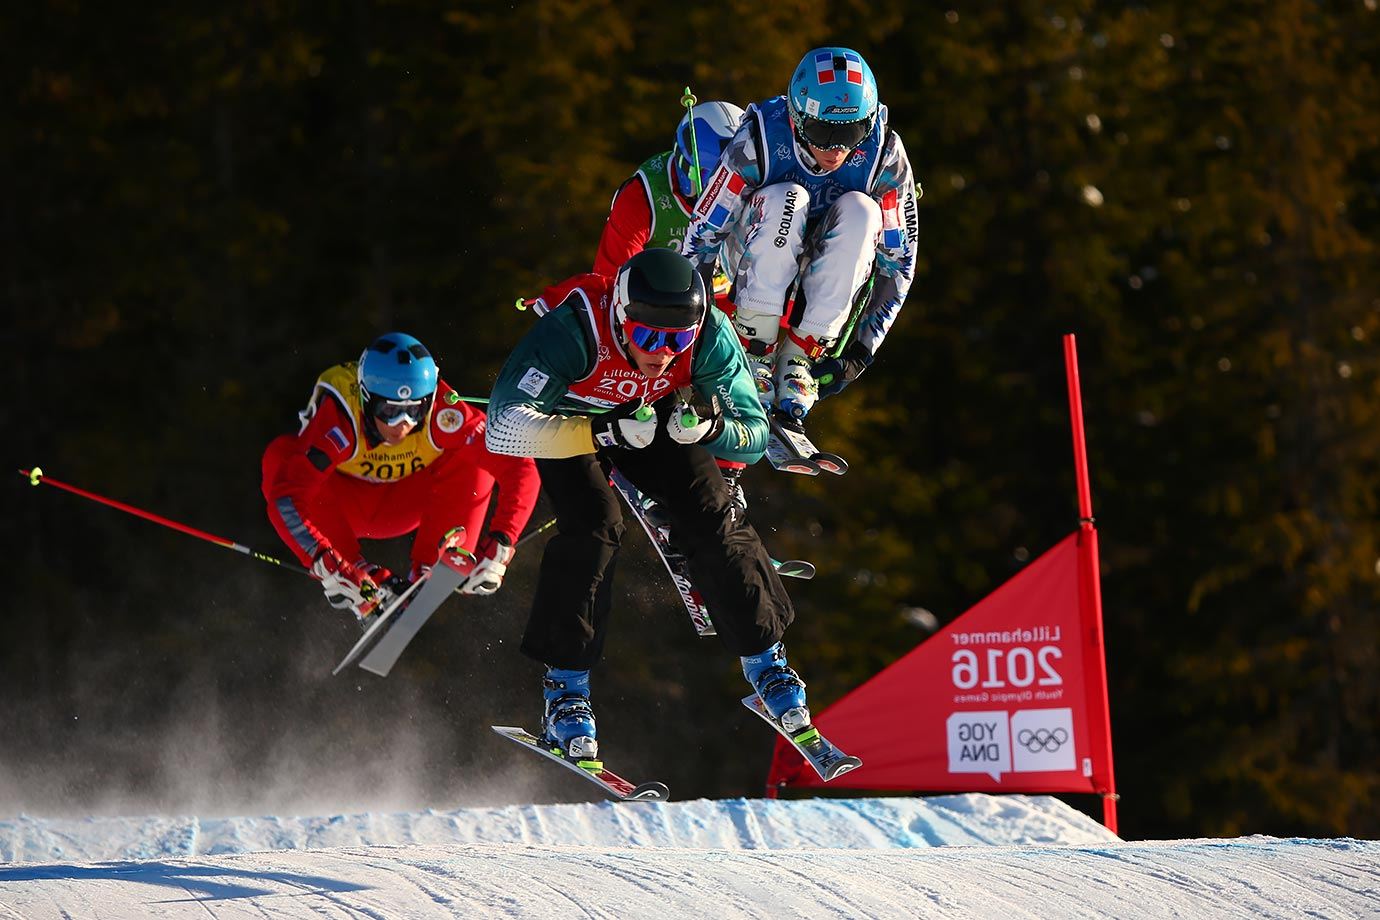 Louis Muhlen (AUS) and Matteo Lucatelli (FRA) compete in the Men's Ski Cross heats at the Hafjell Freepark on Feb. 15, 2016 during the Winter Youth Olympic Games in Lillehammer, Norway.